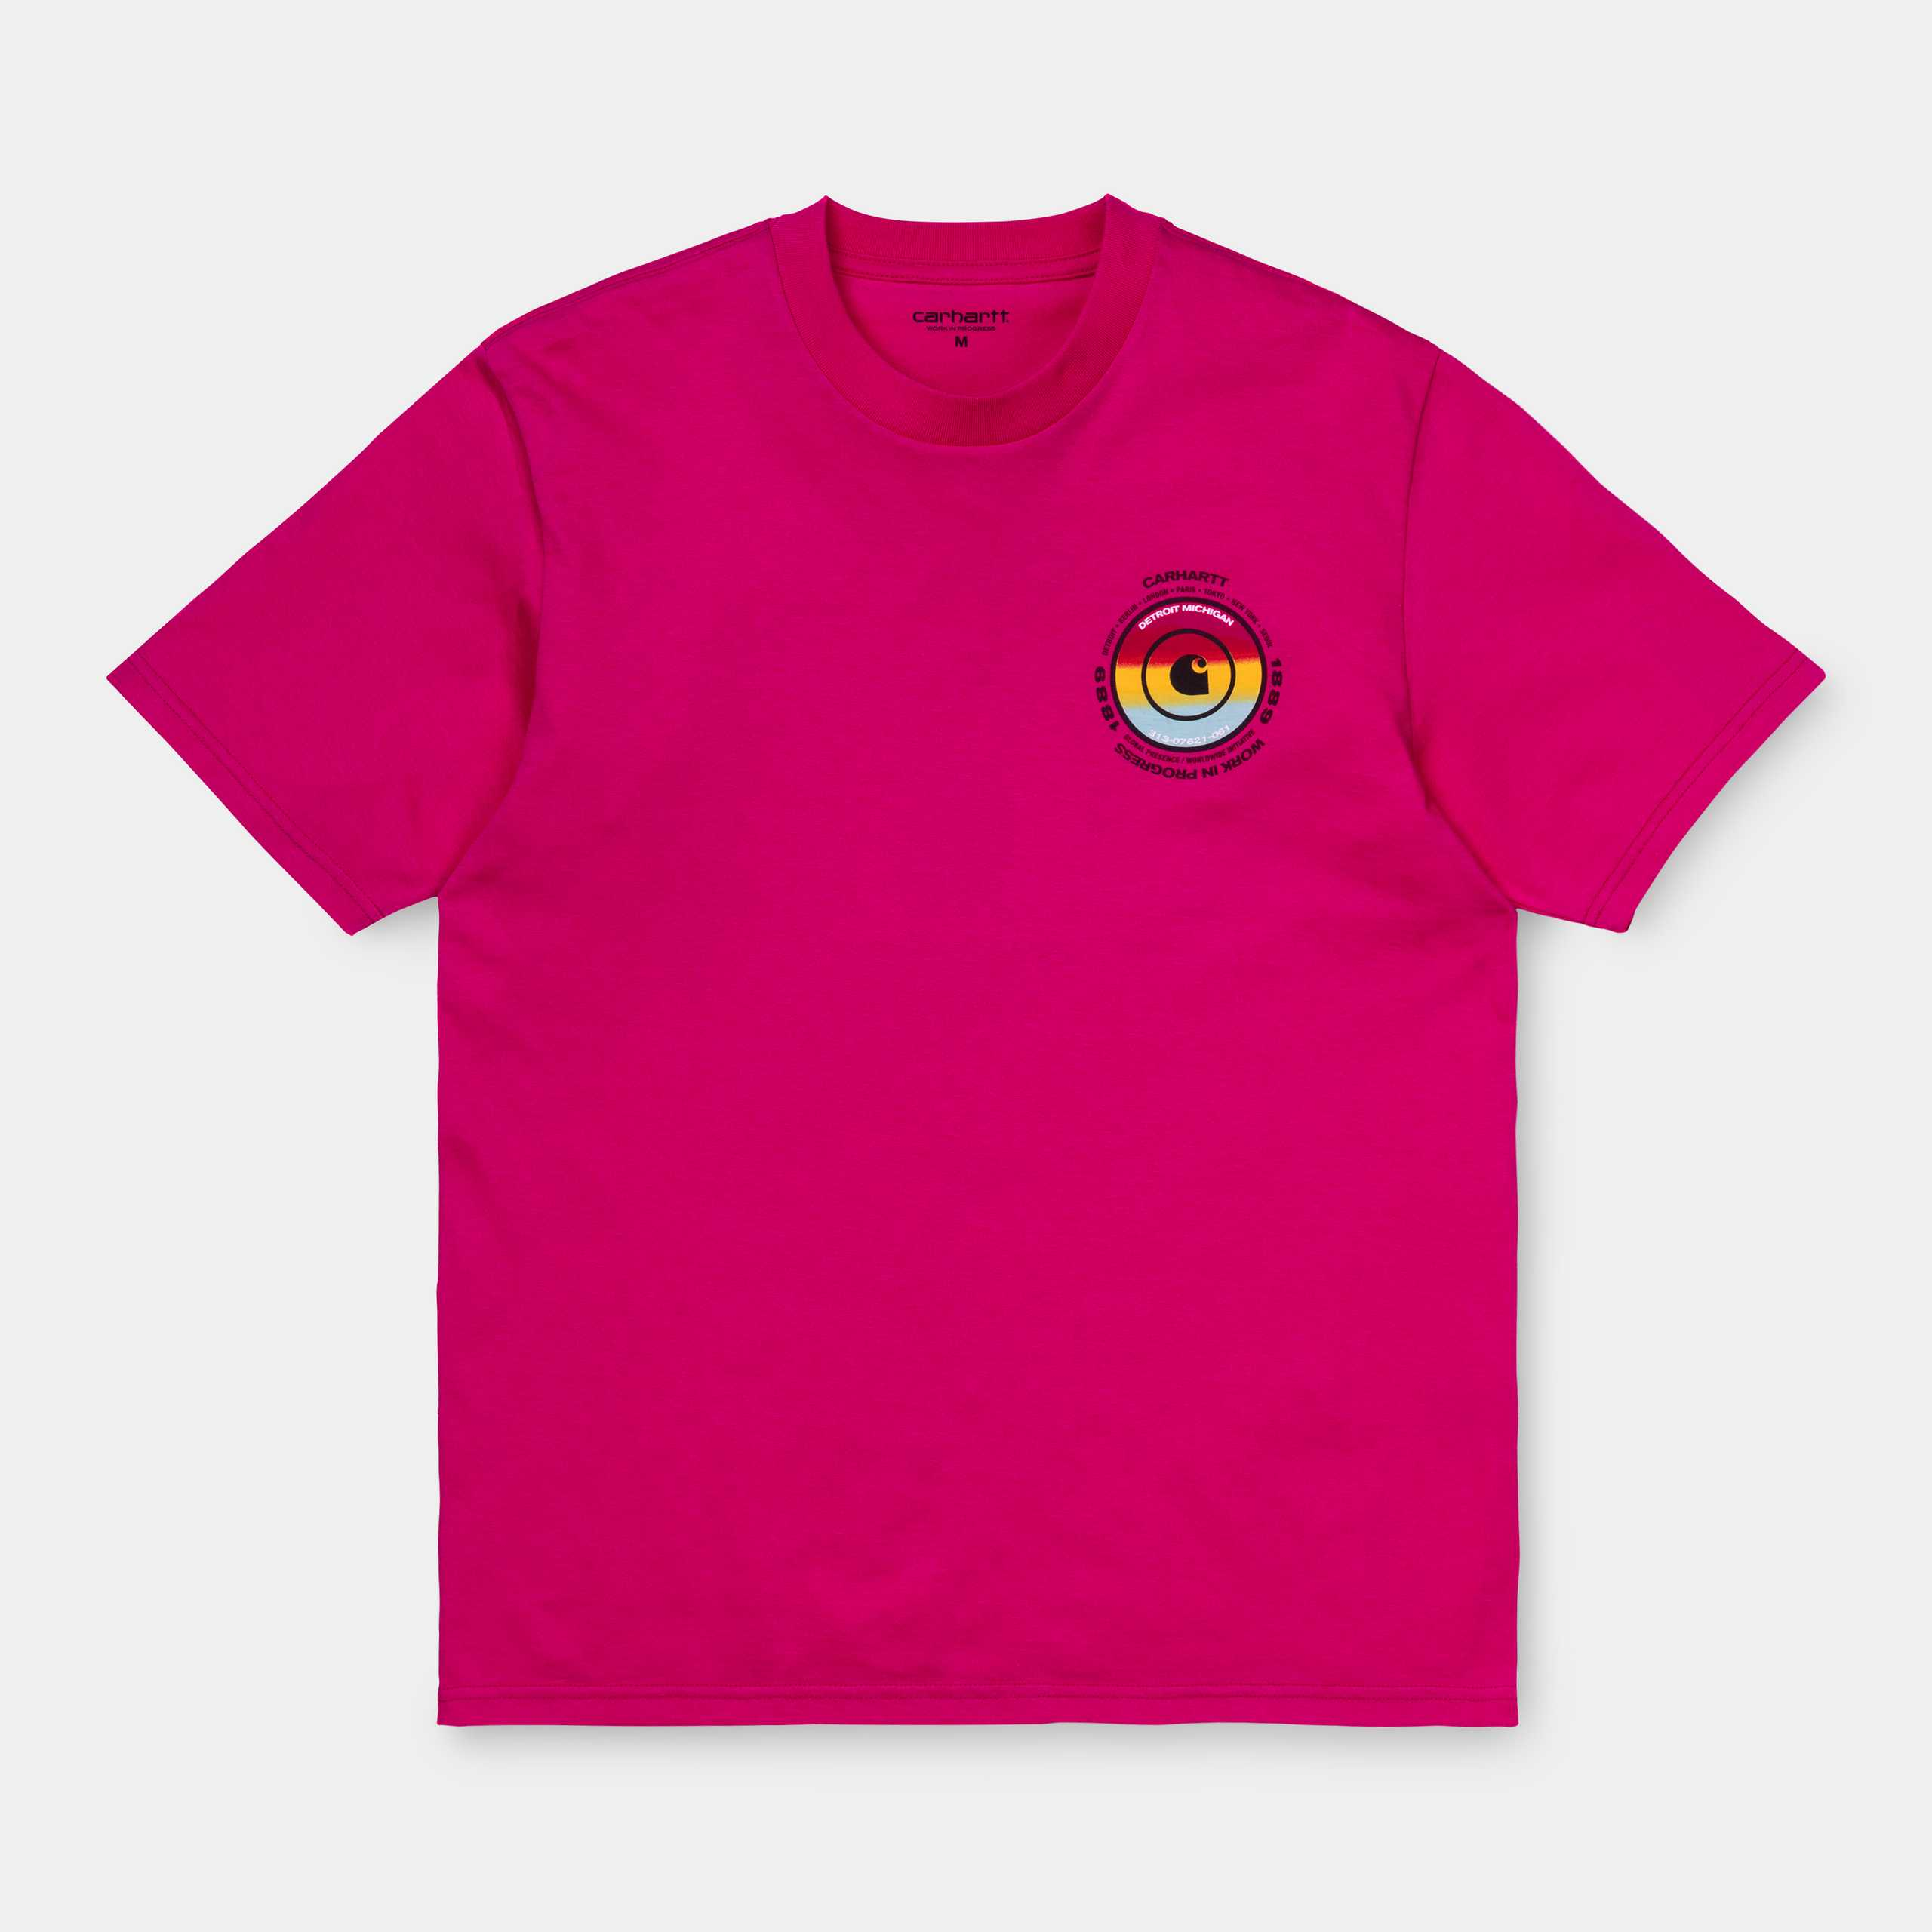 s-s-worldwide-t-shirt-ruby-pink-573